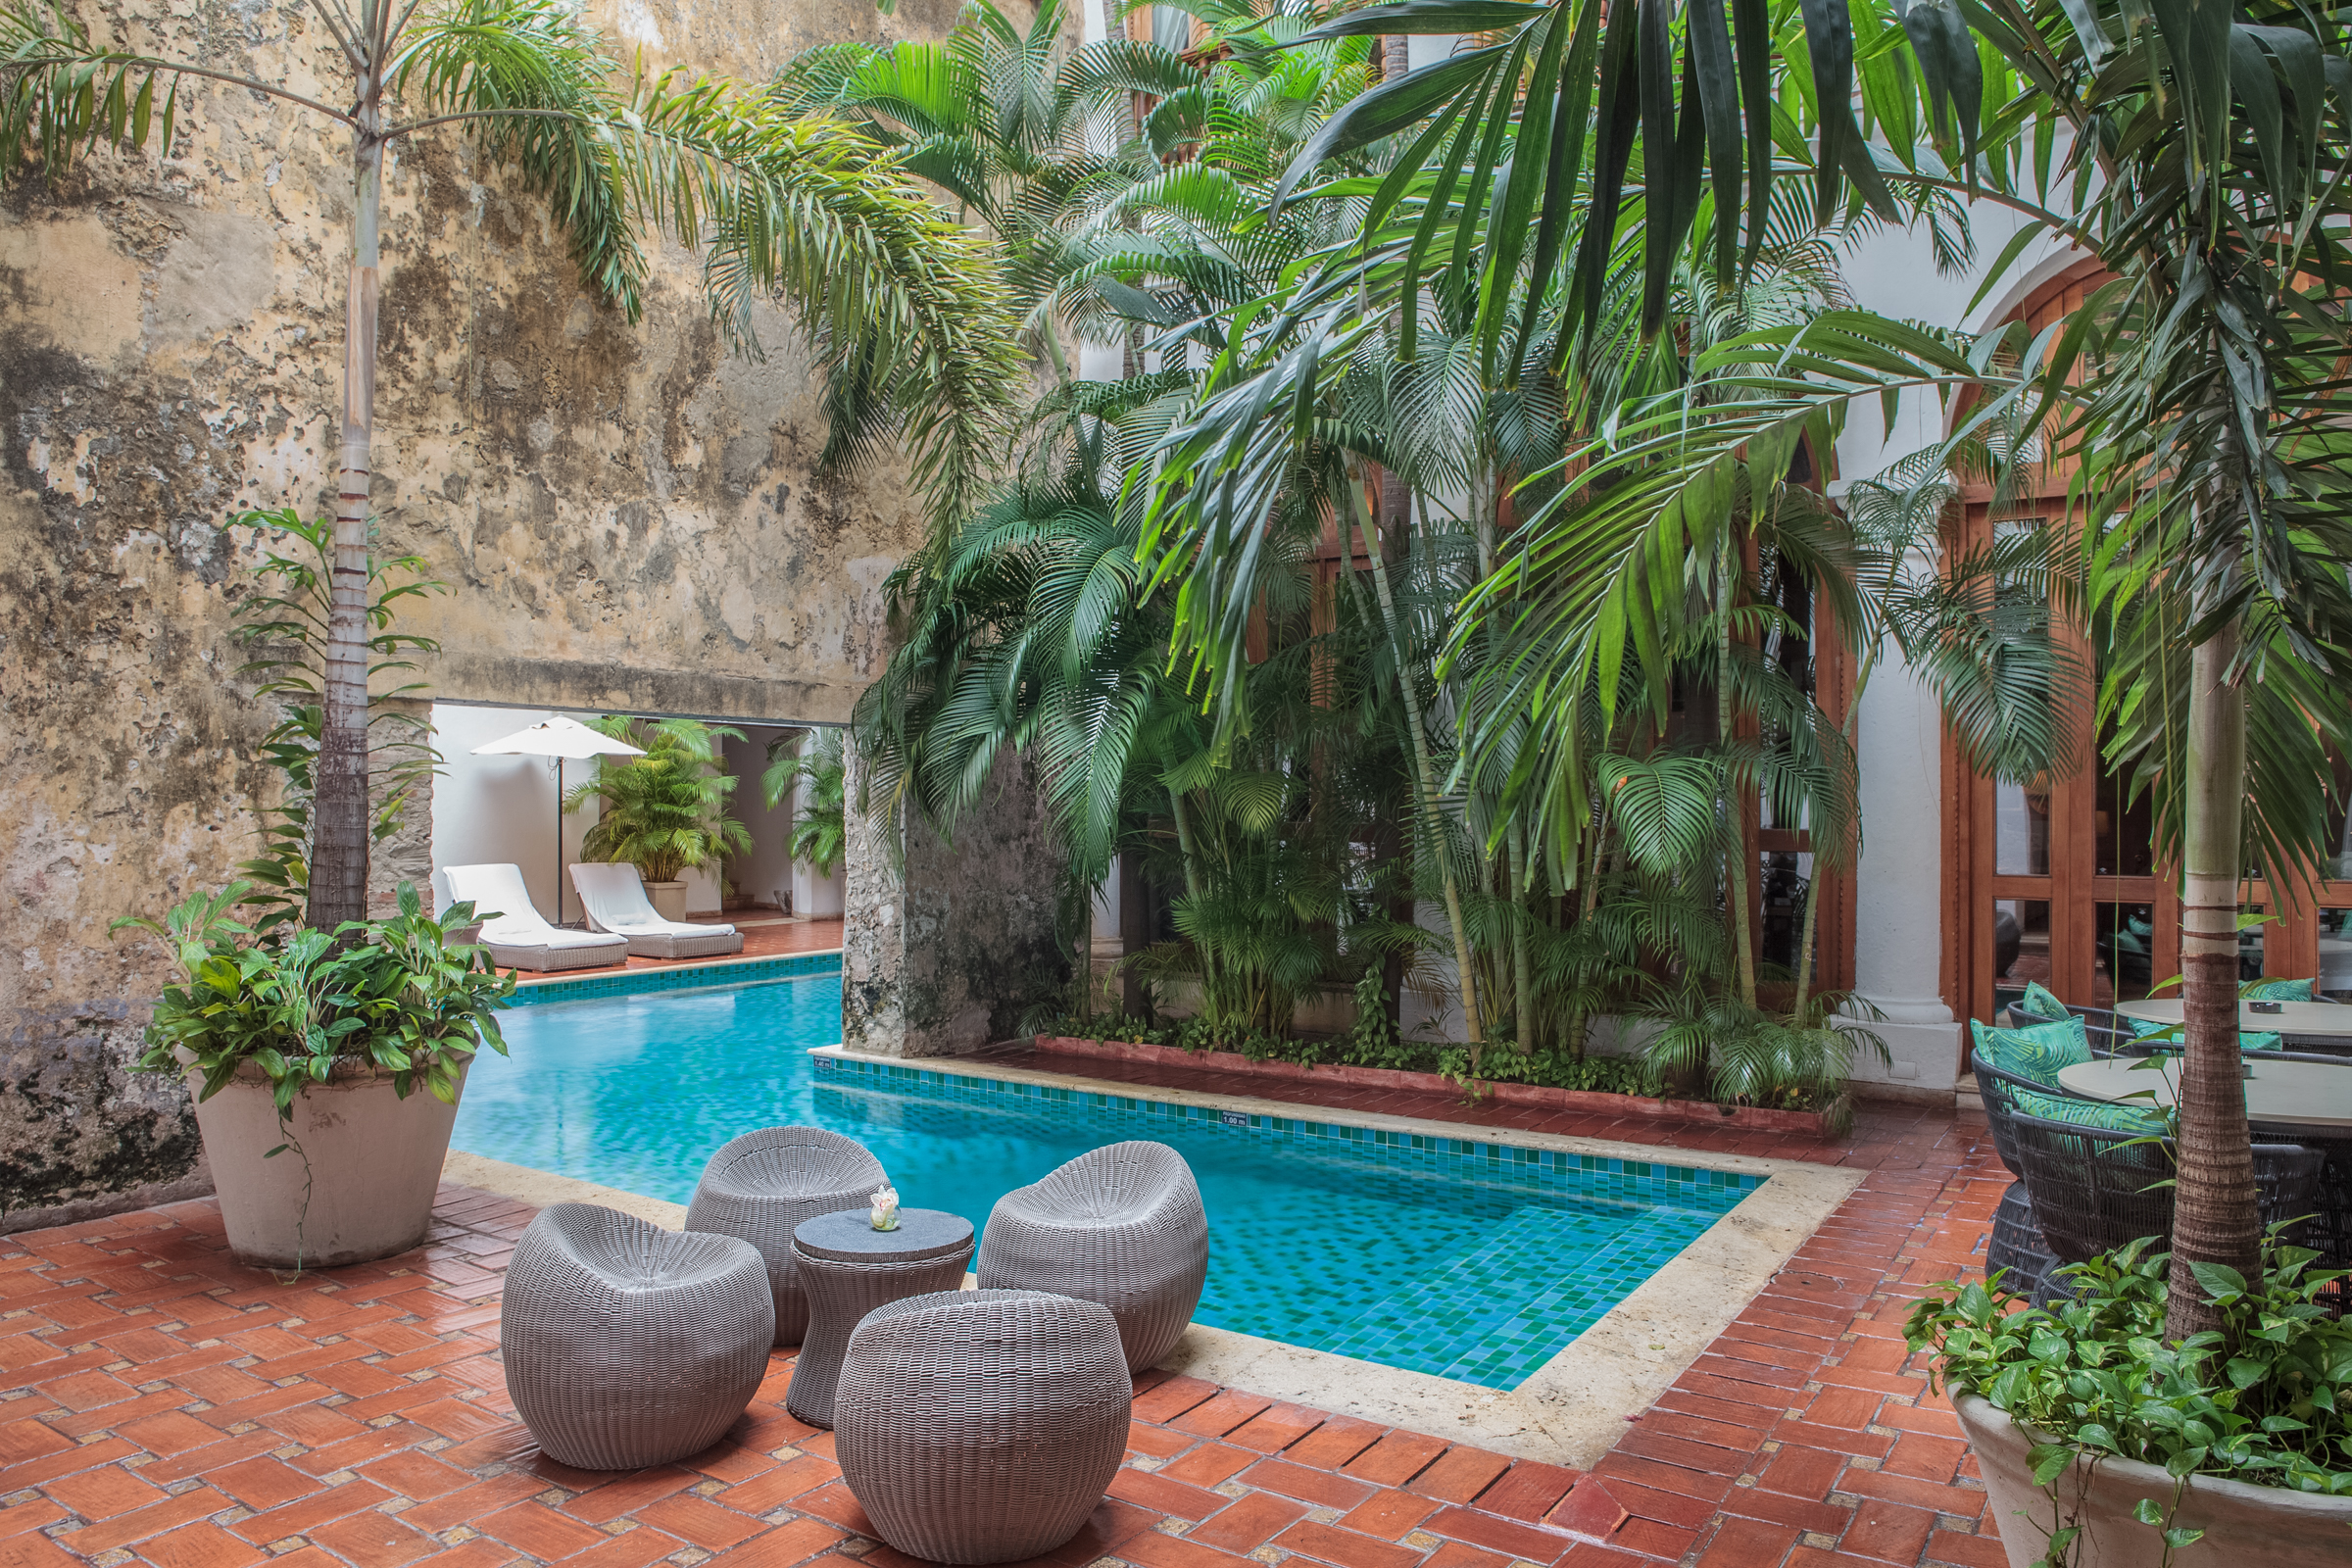 Poolside at Hotel Casa San Agustin ( photo courtesy of Hotel Casa San Agustin)